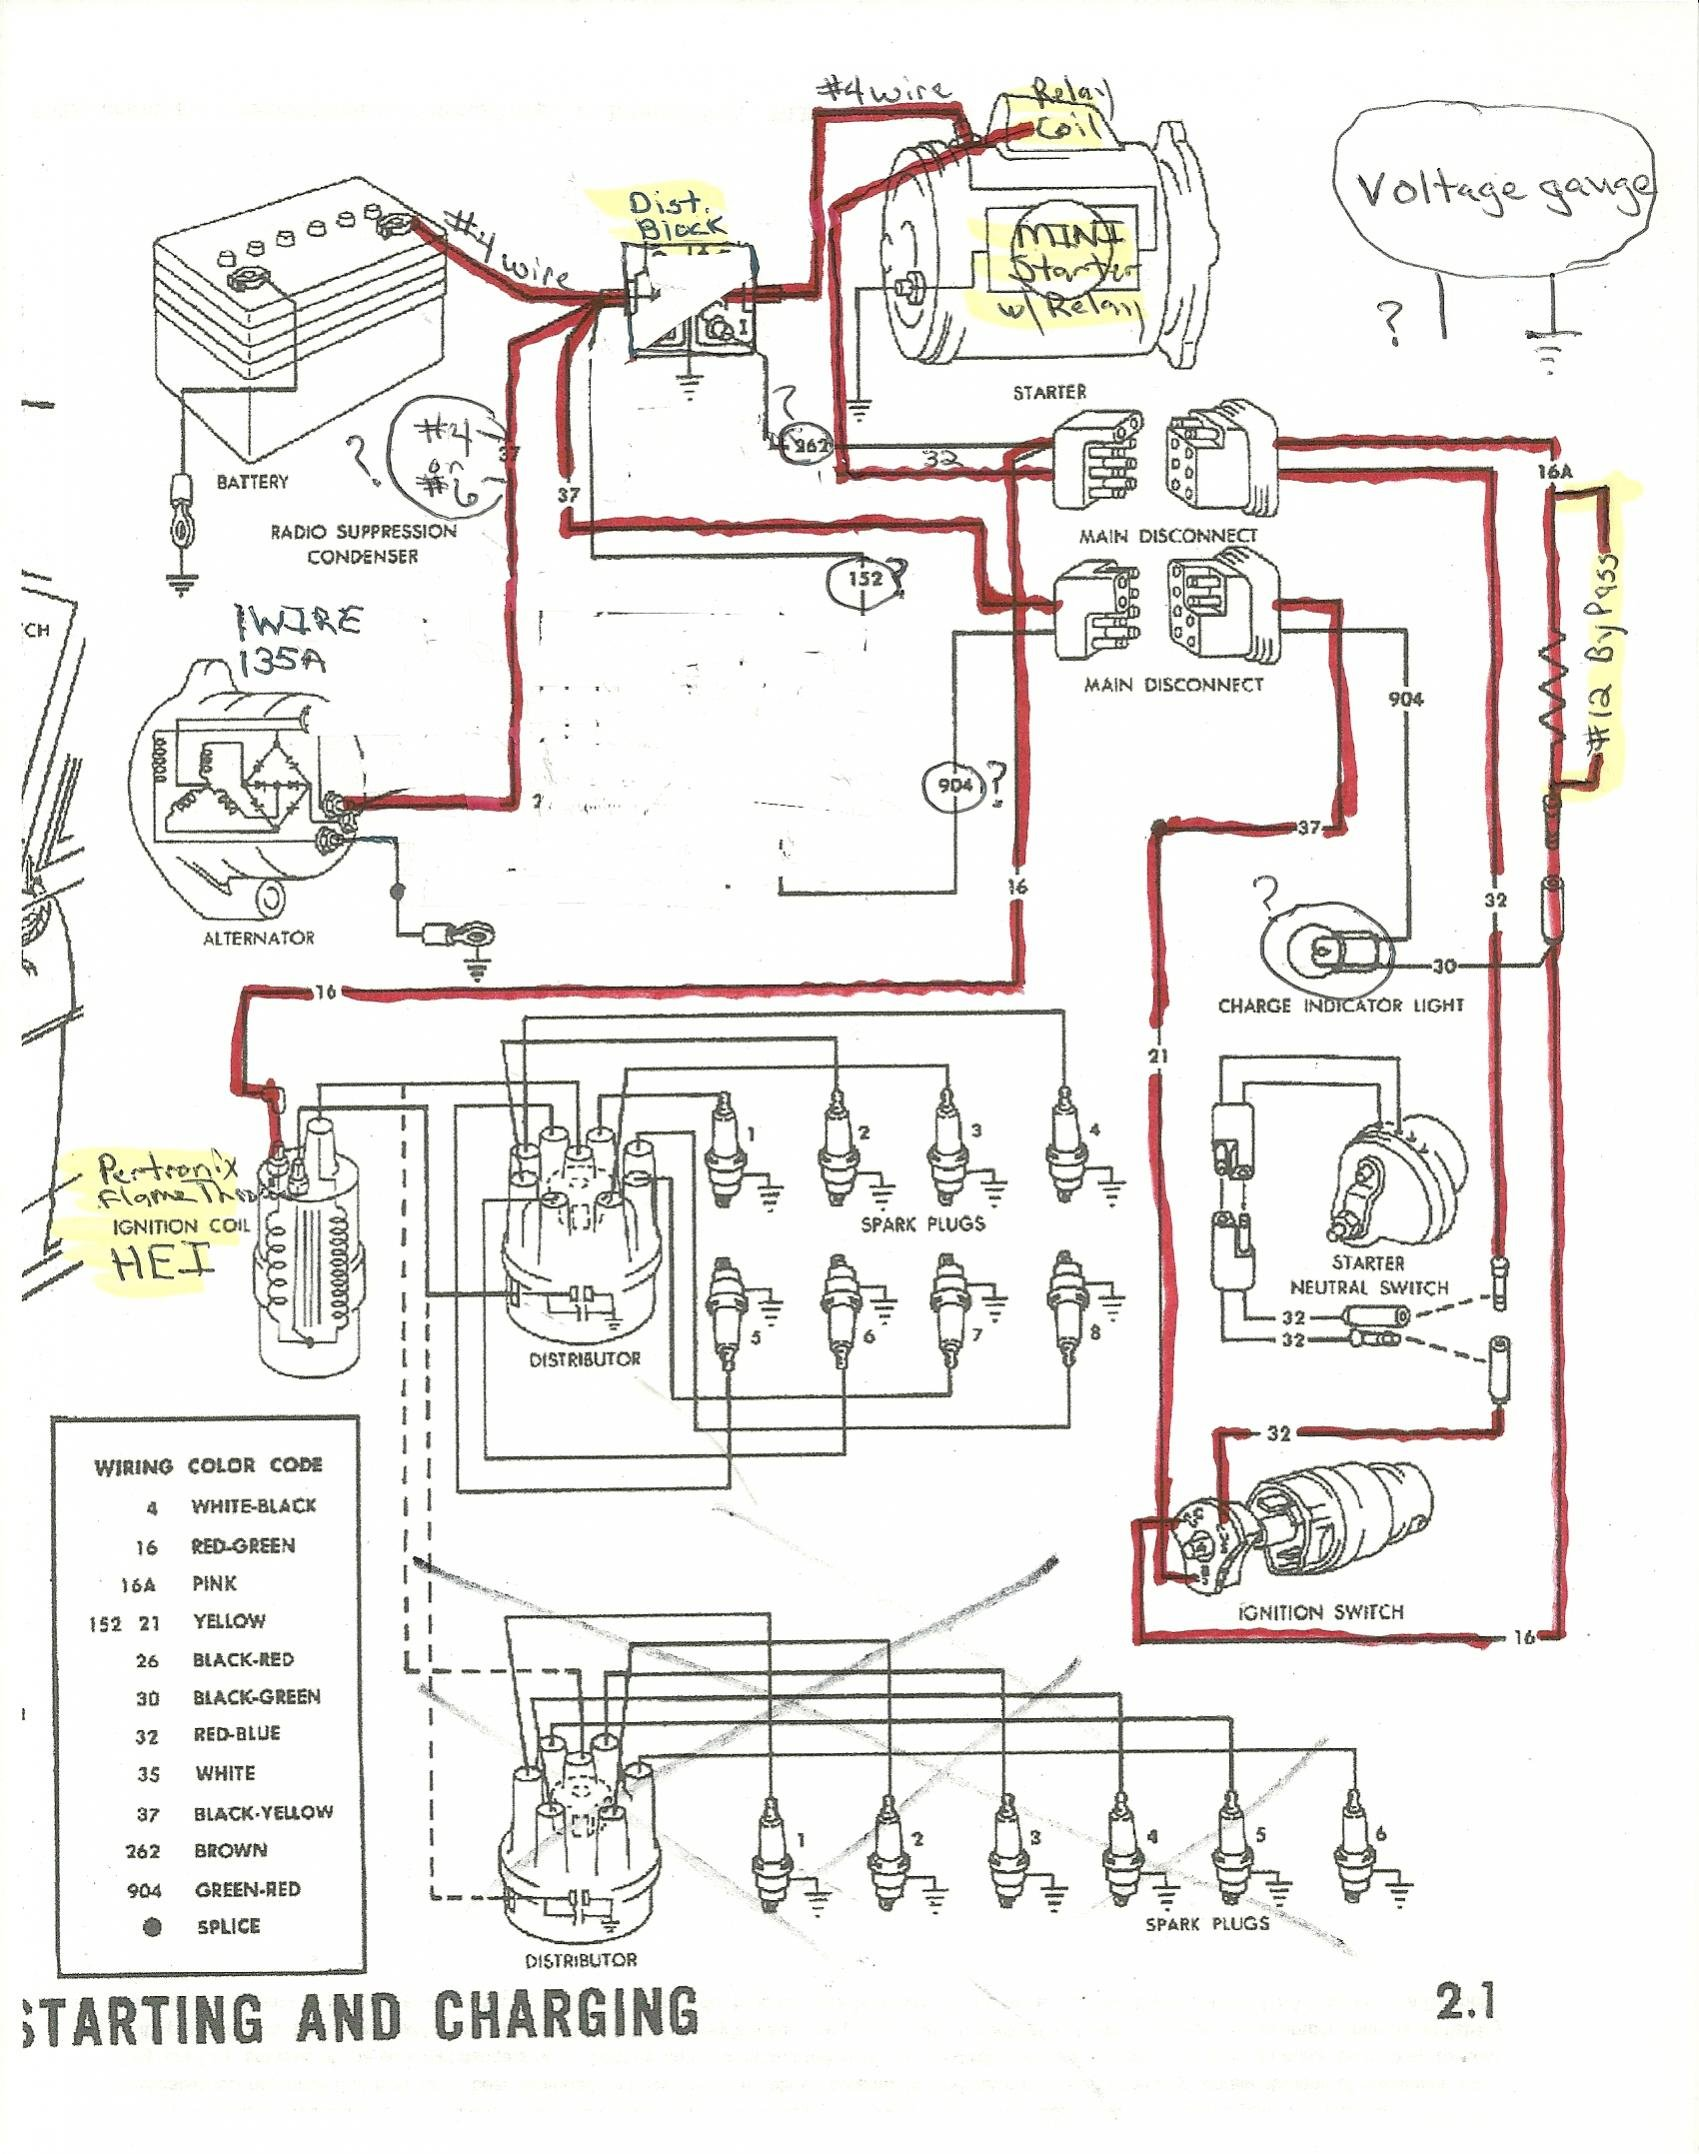 hight resolution of 1965 ford alternator wiring wiring diagram fascinating1965 ford alternator wiring wiring diagram 1965 ford thunderbird alternator